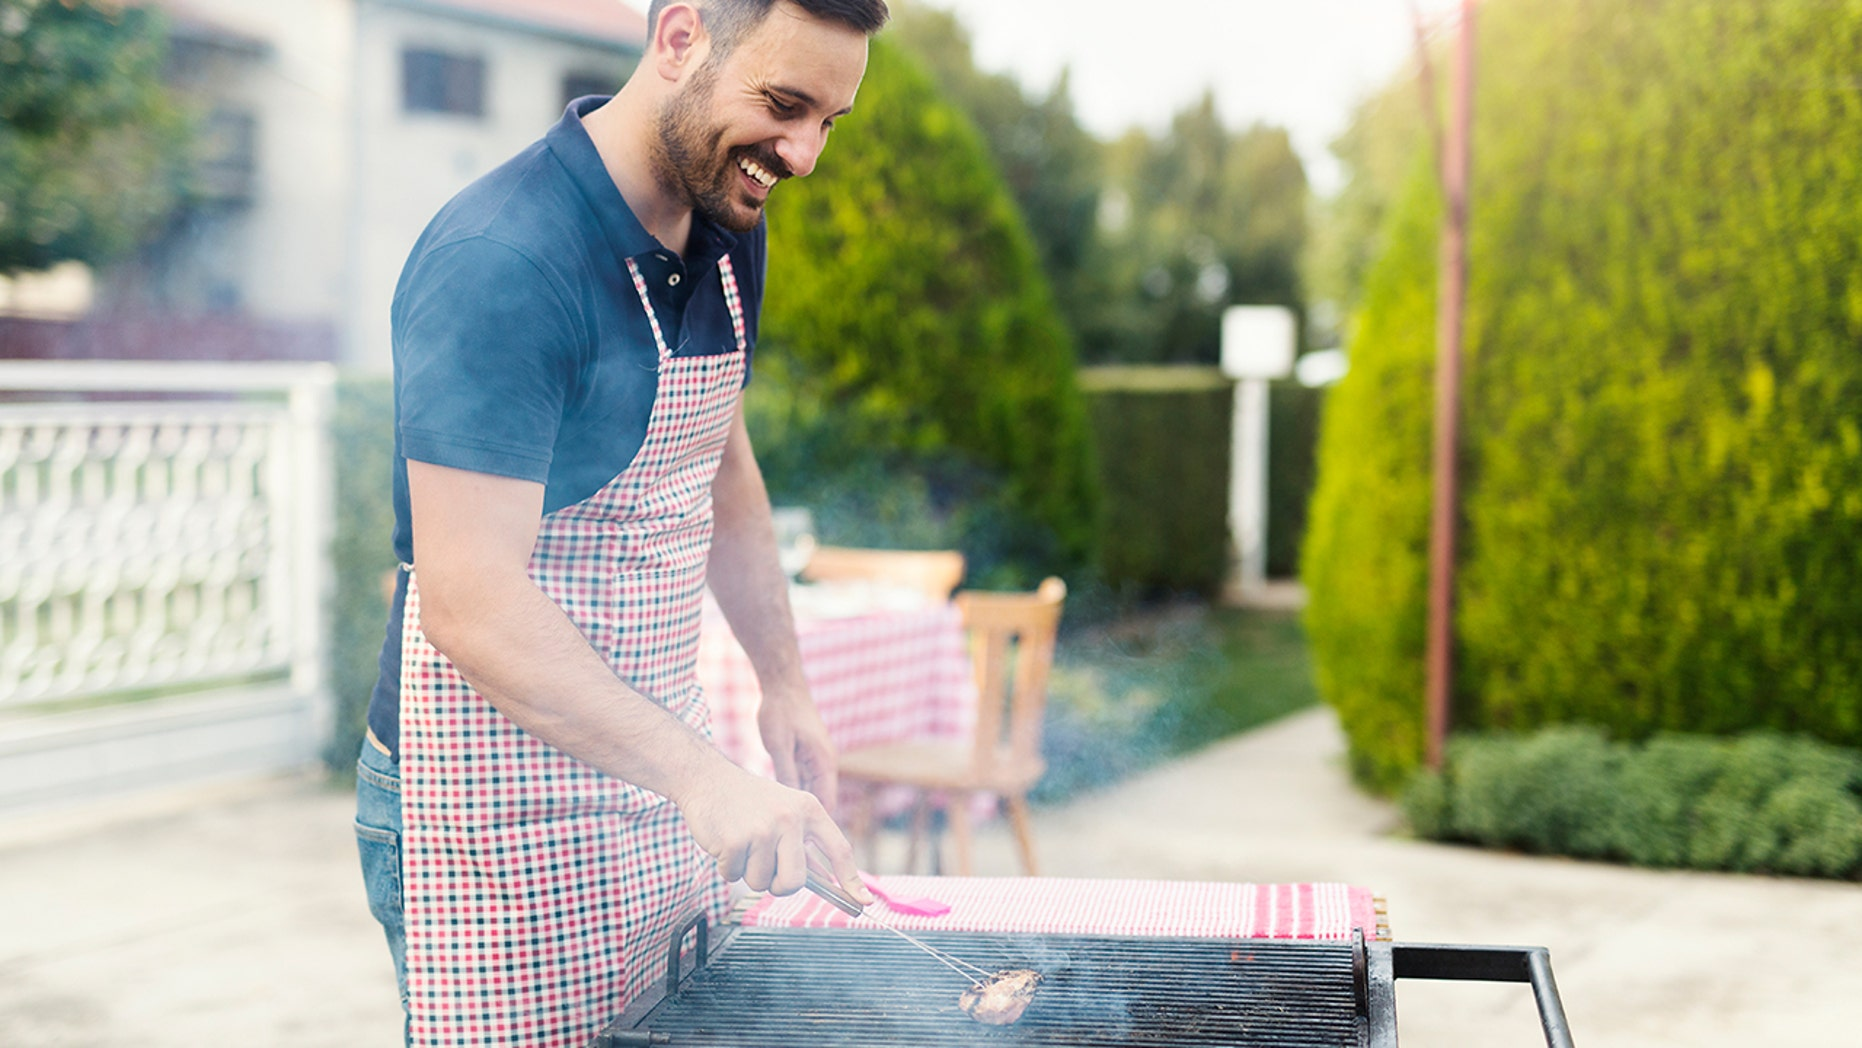 Follow these tips to get your grill ready for summer.